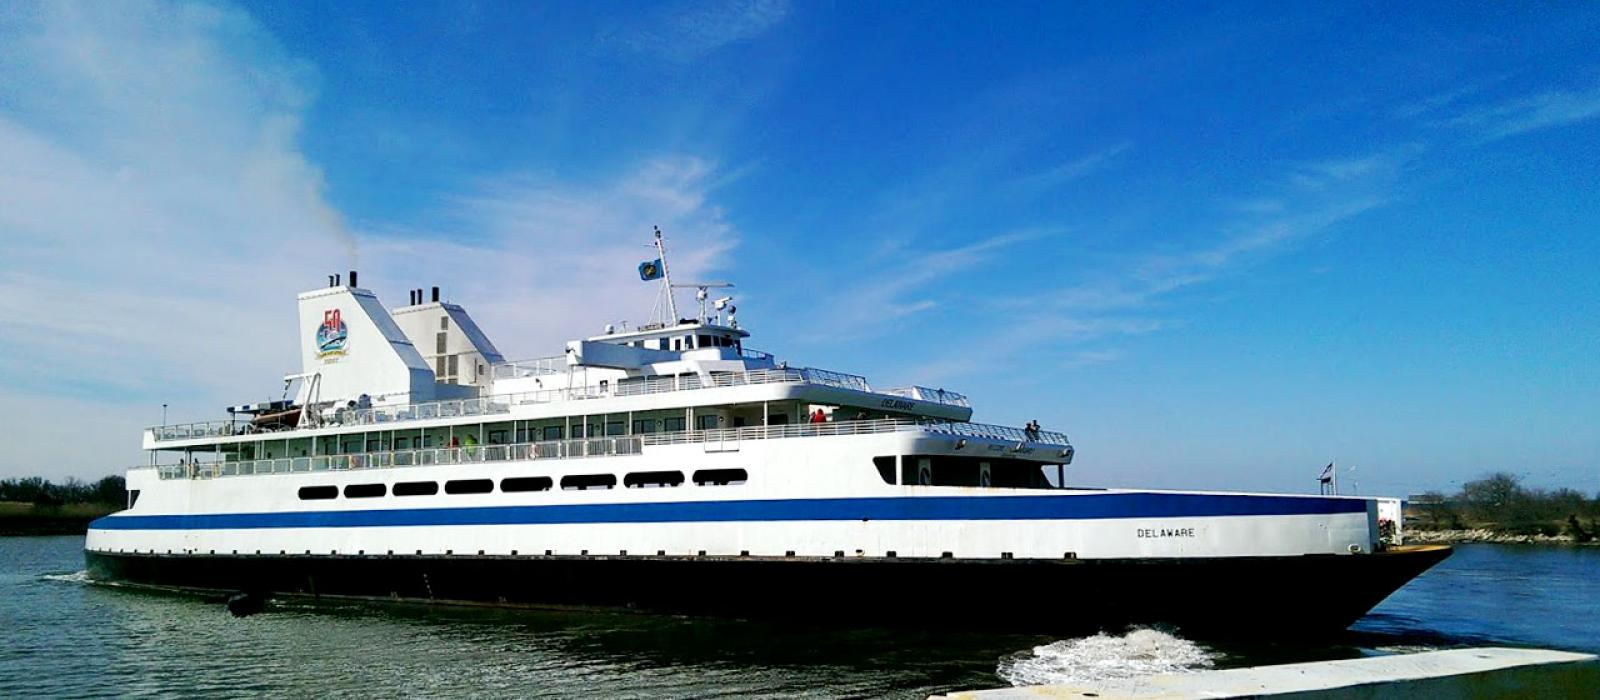 welcome to the cape may lewes ferry